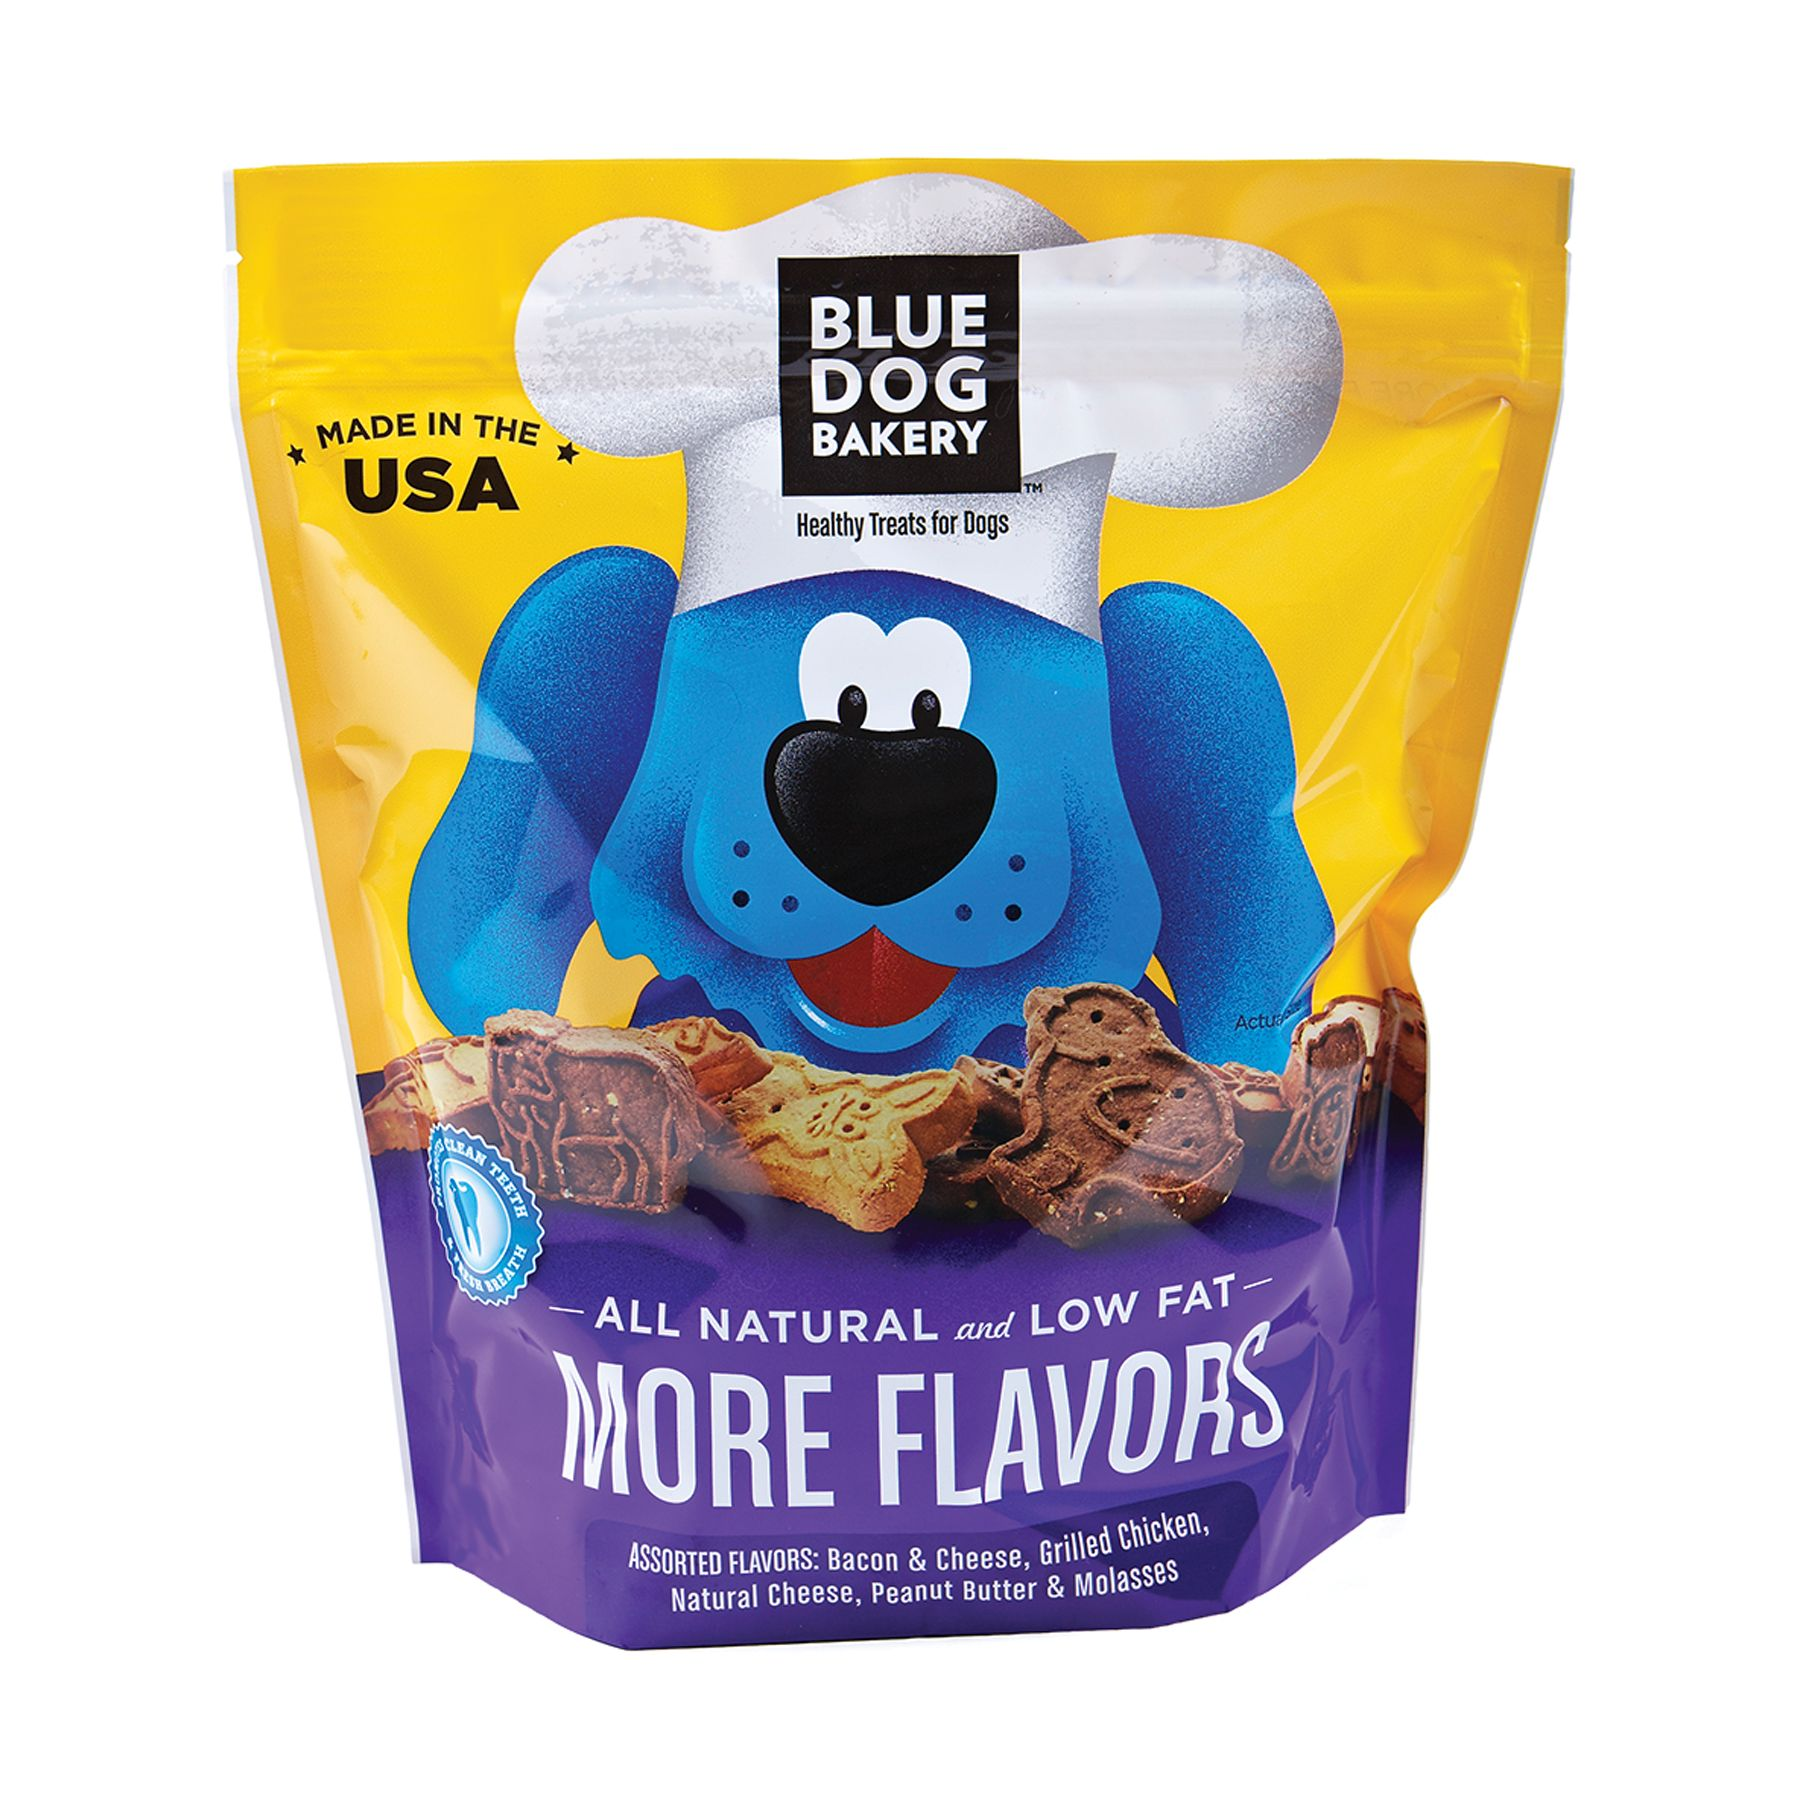 Blue Dog Bakery More Flavors Dog Treat Size 2.5 Lb